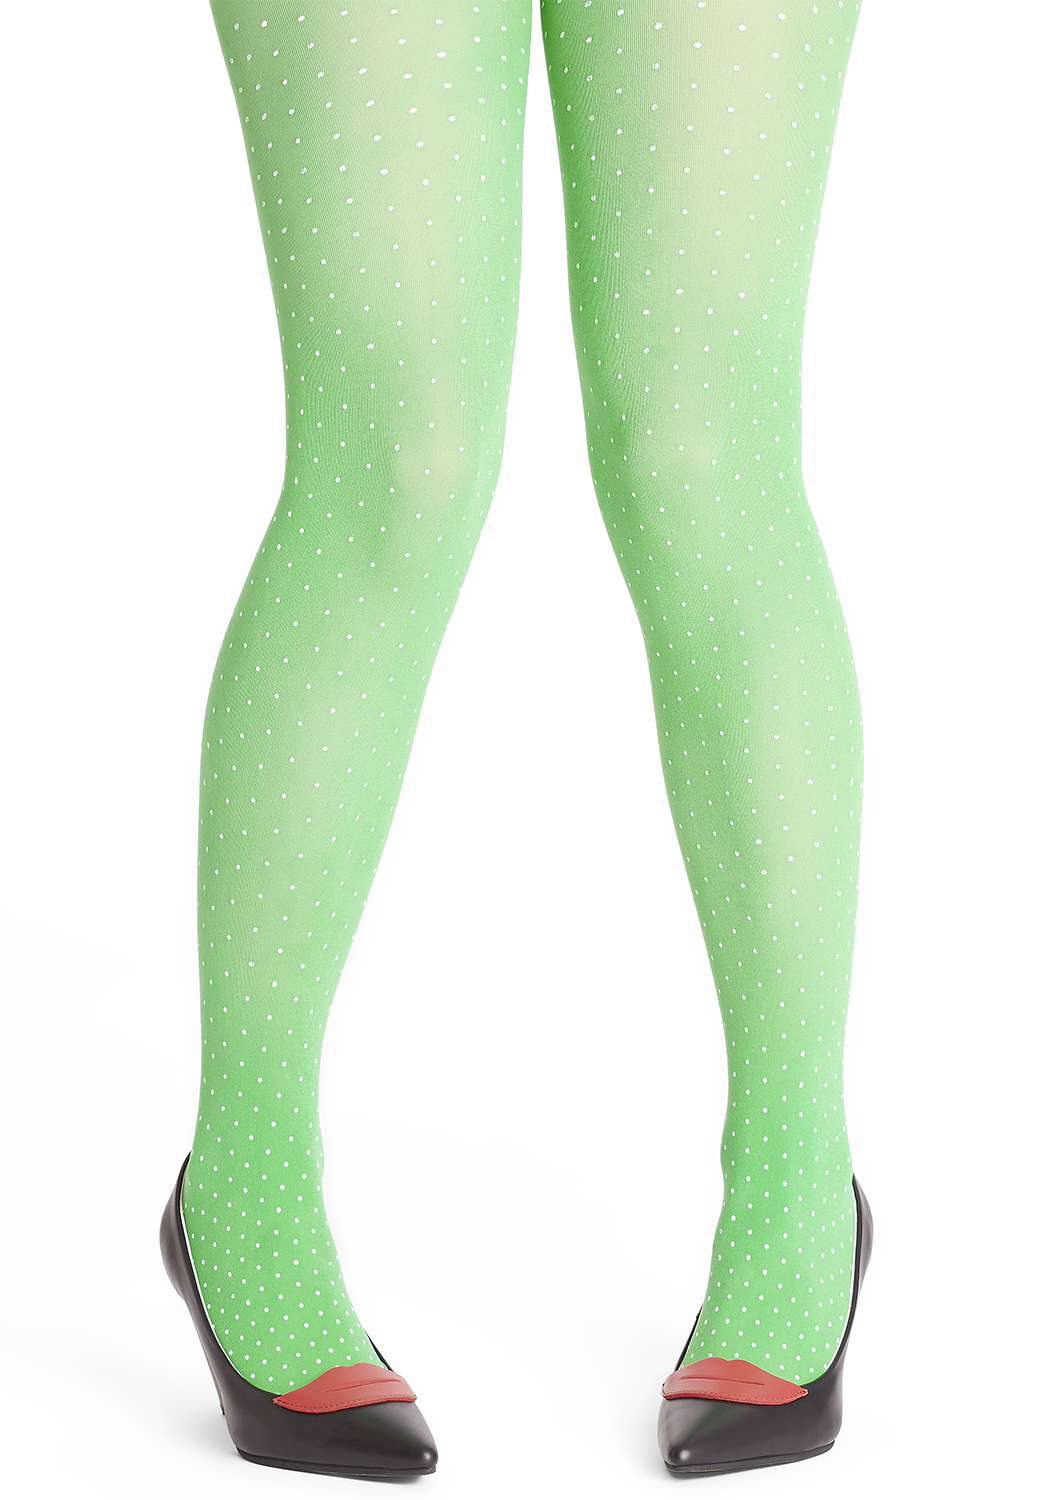 Tant Sofia-Margot tights - Grasshopper green